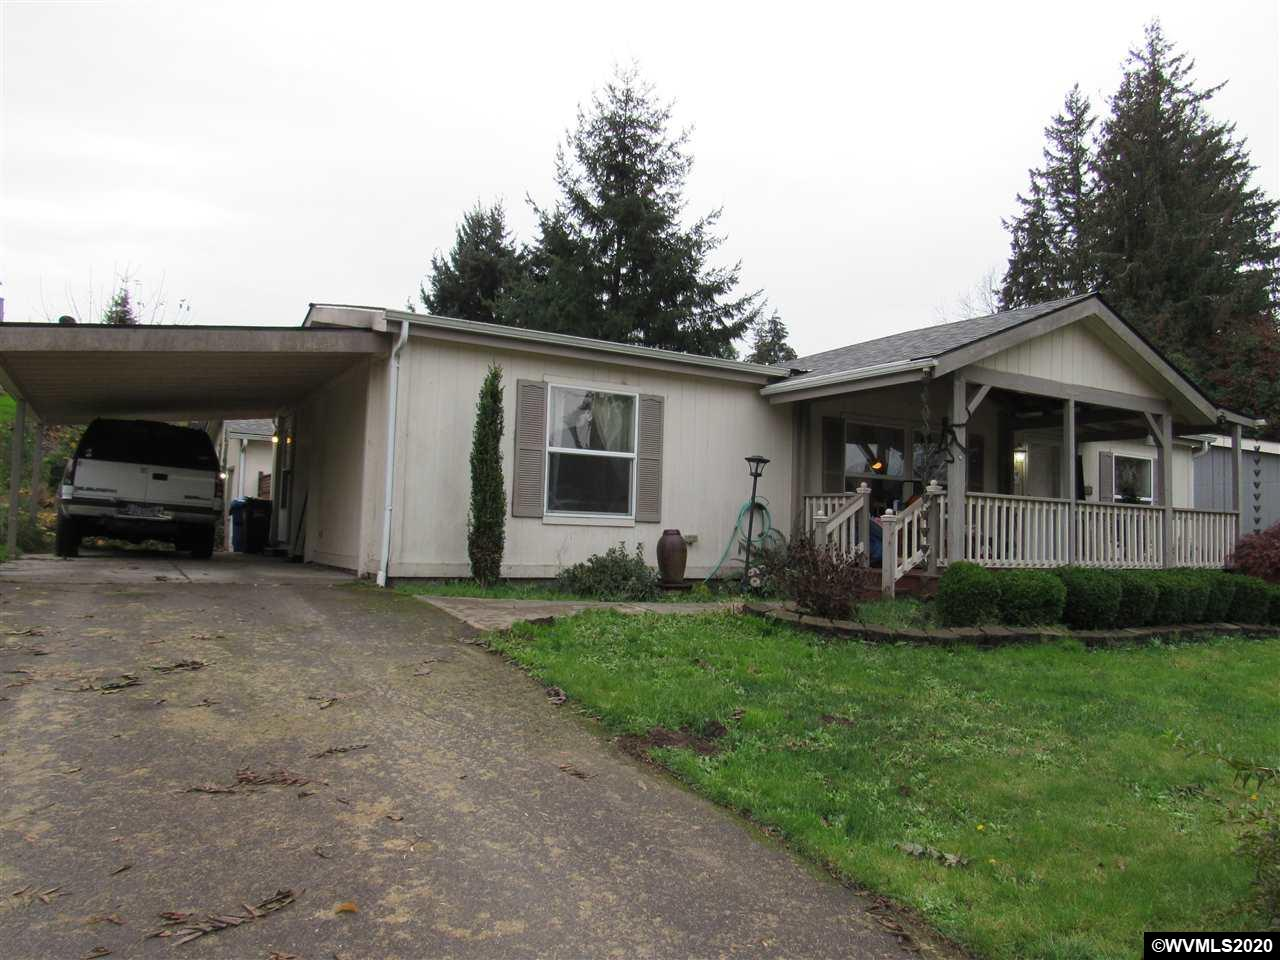 344 SE Hazel St, Mill City, Oregon 97360, 3 Bedrooms Bedrooms, ,2 BathroomsBathrooms,Residence,For sale,344 SE Hazel St,768433